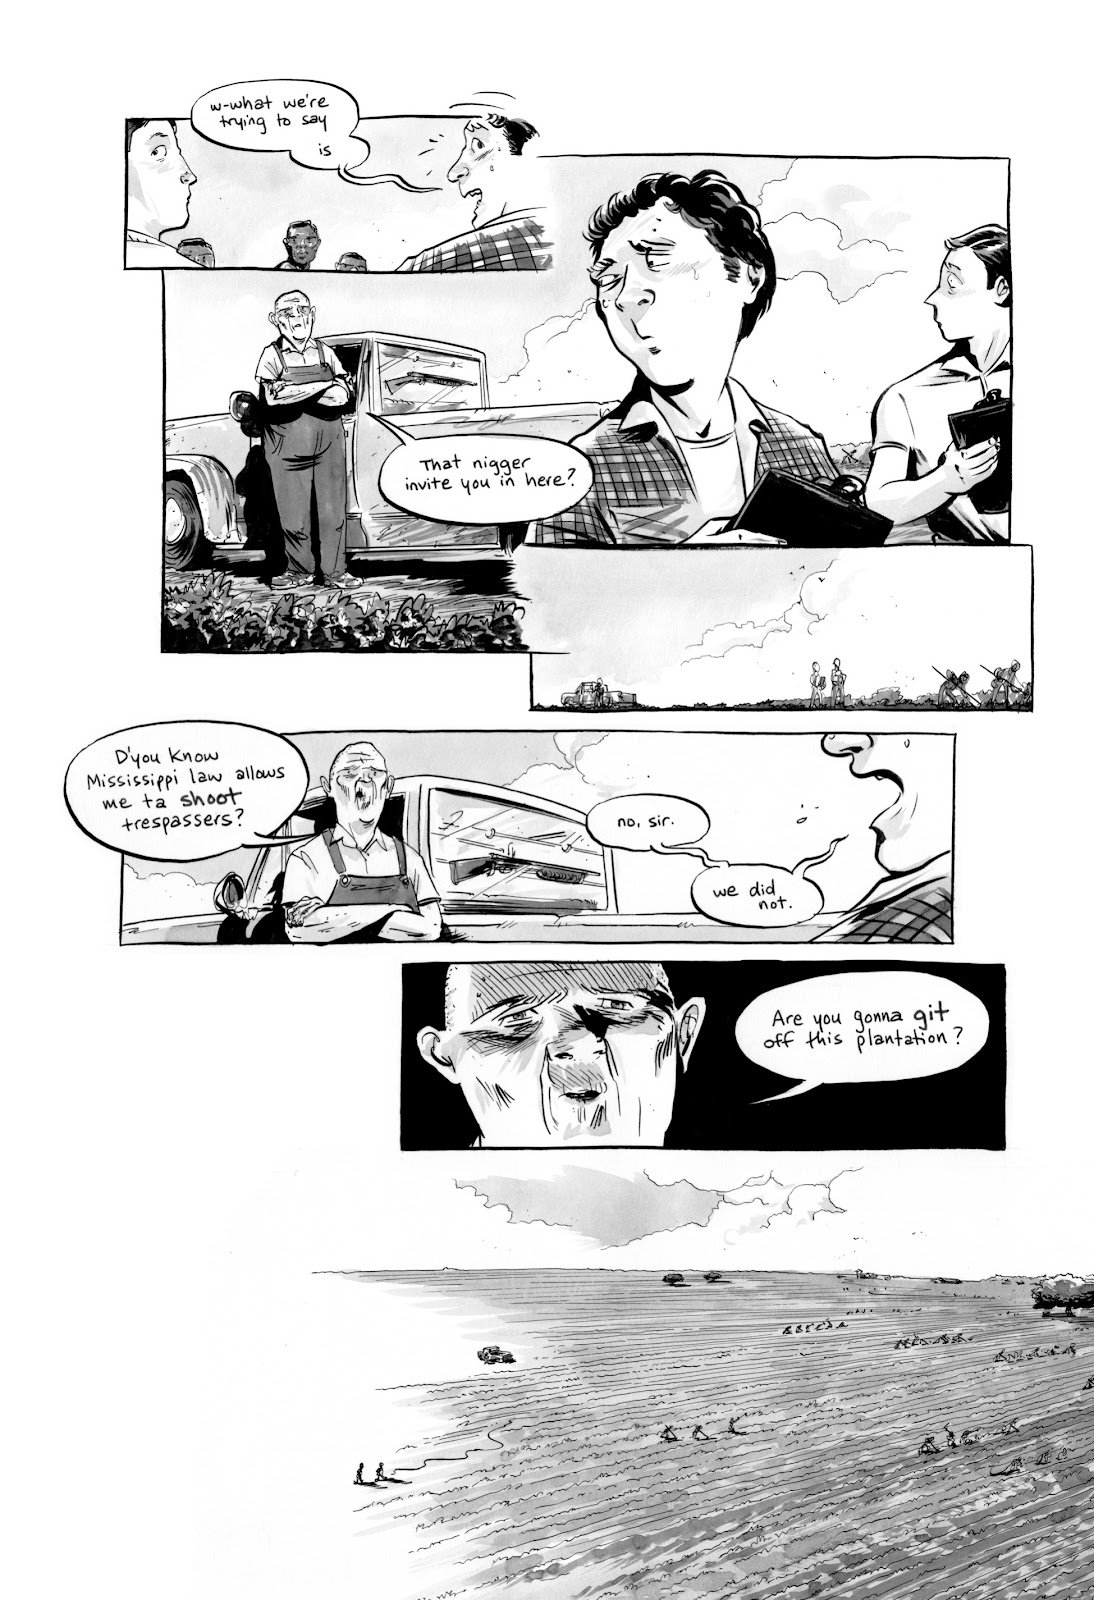 March 3 Page 86